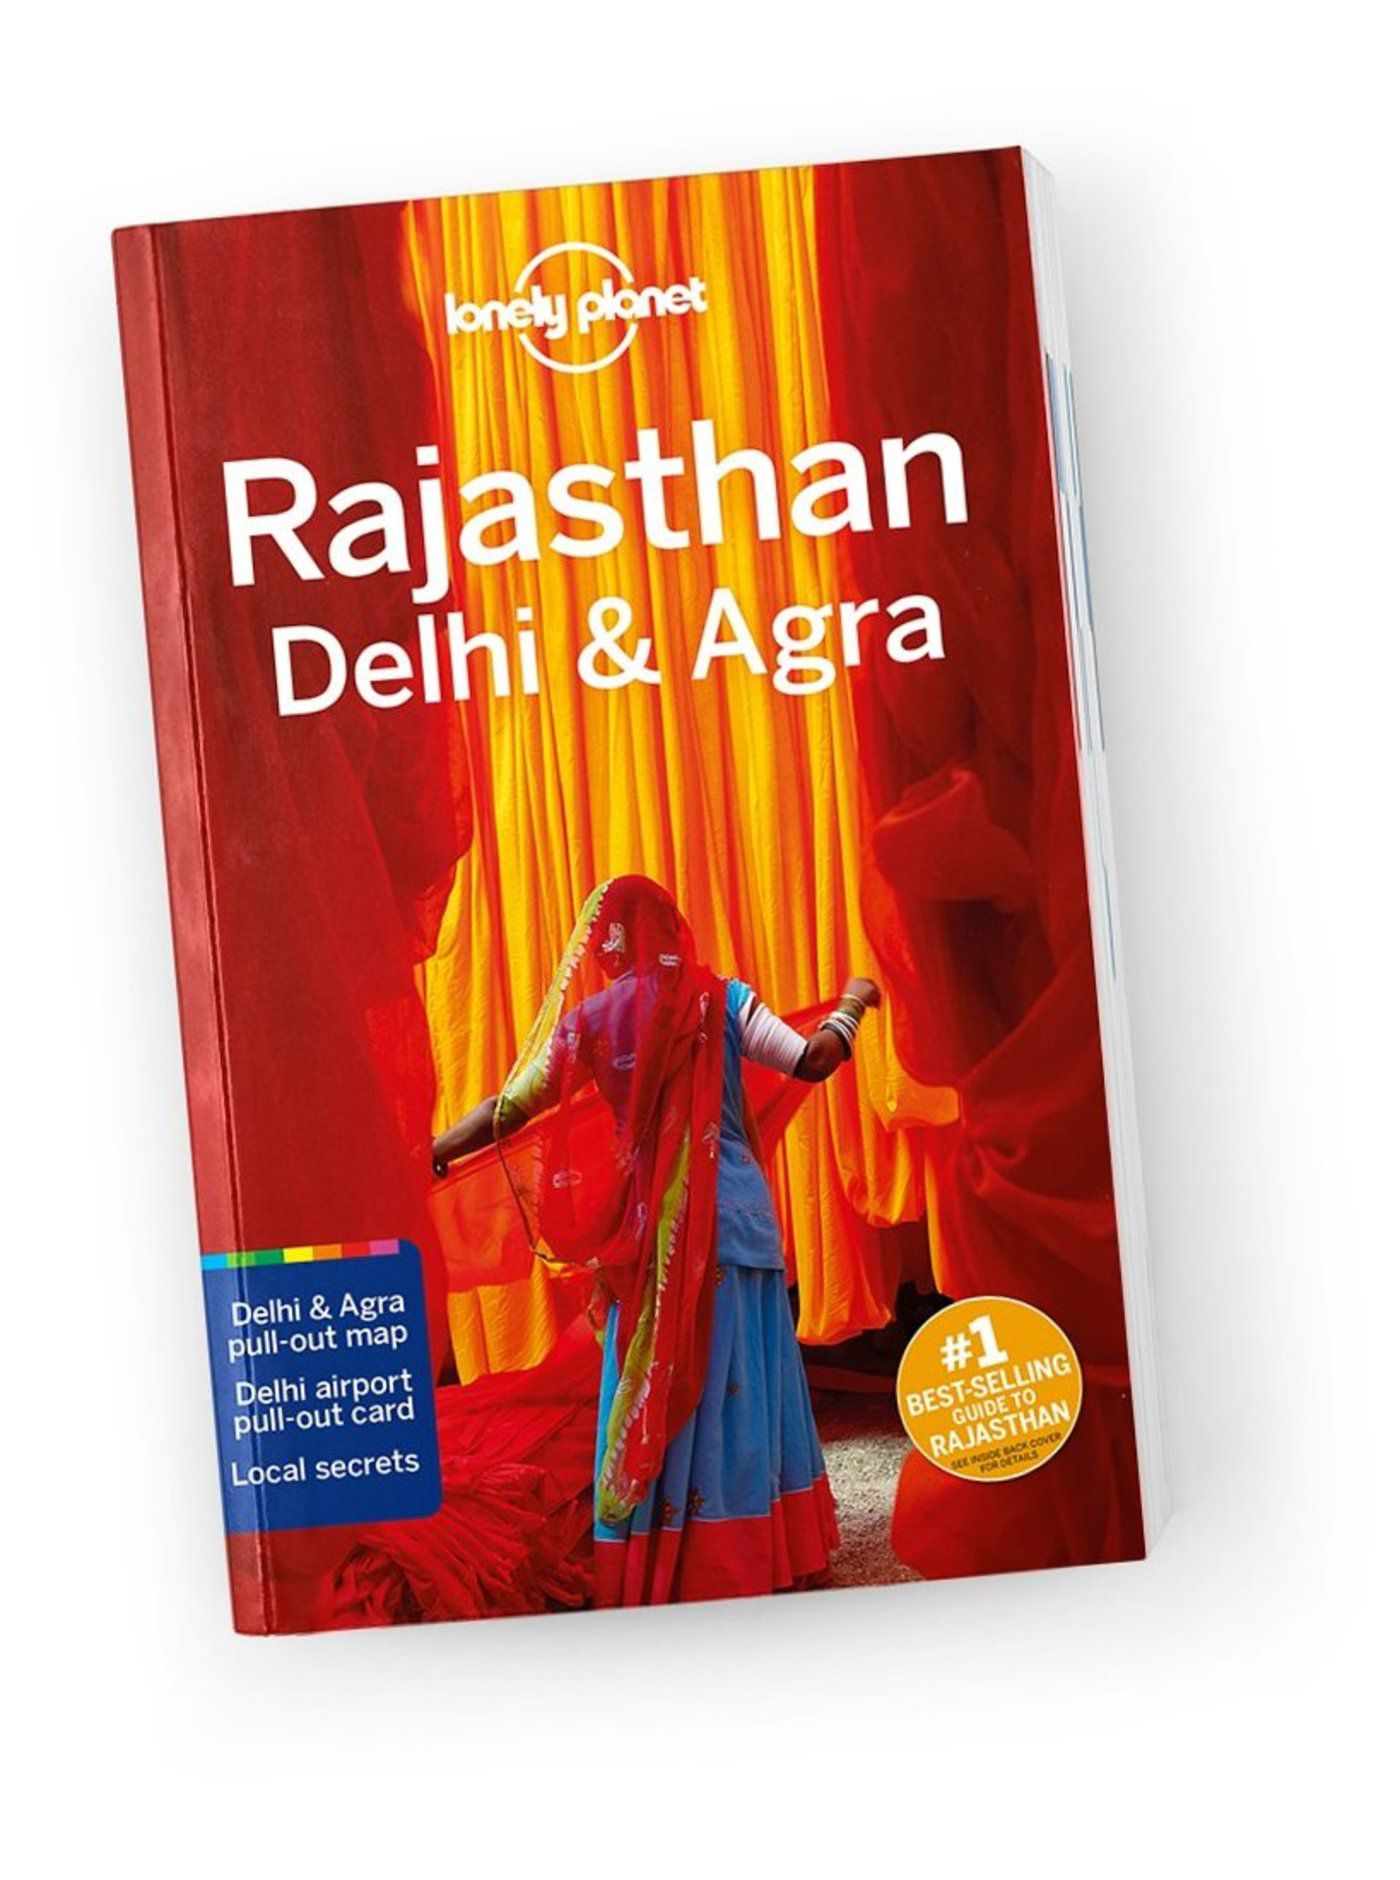 Rajasthan, Delhi & Agra travel guide - 6th edition